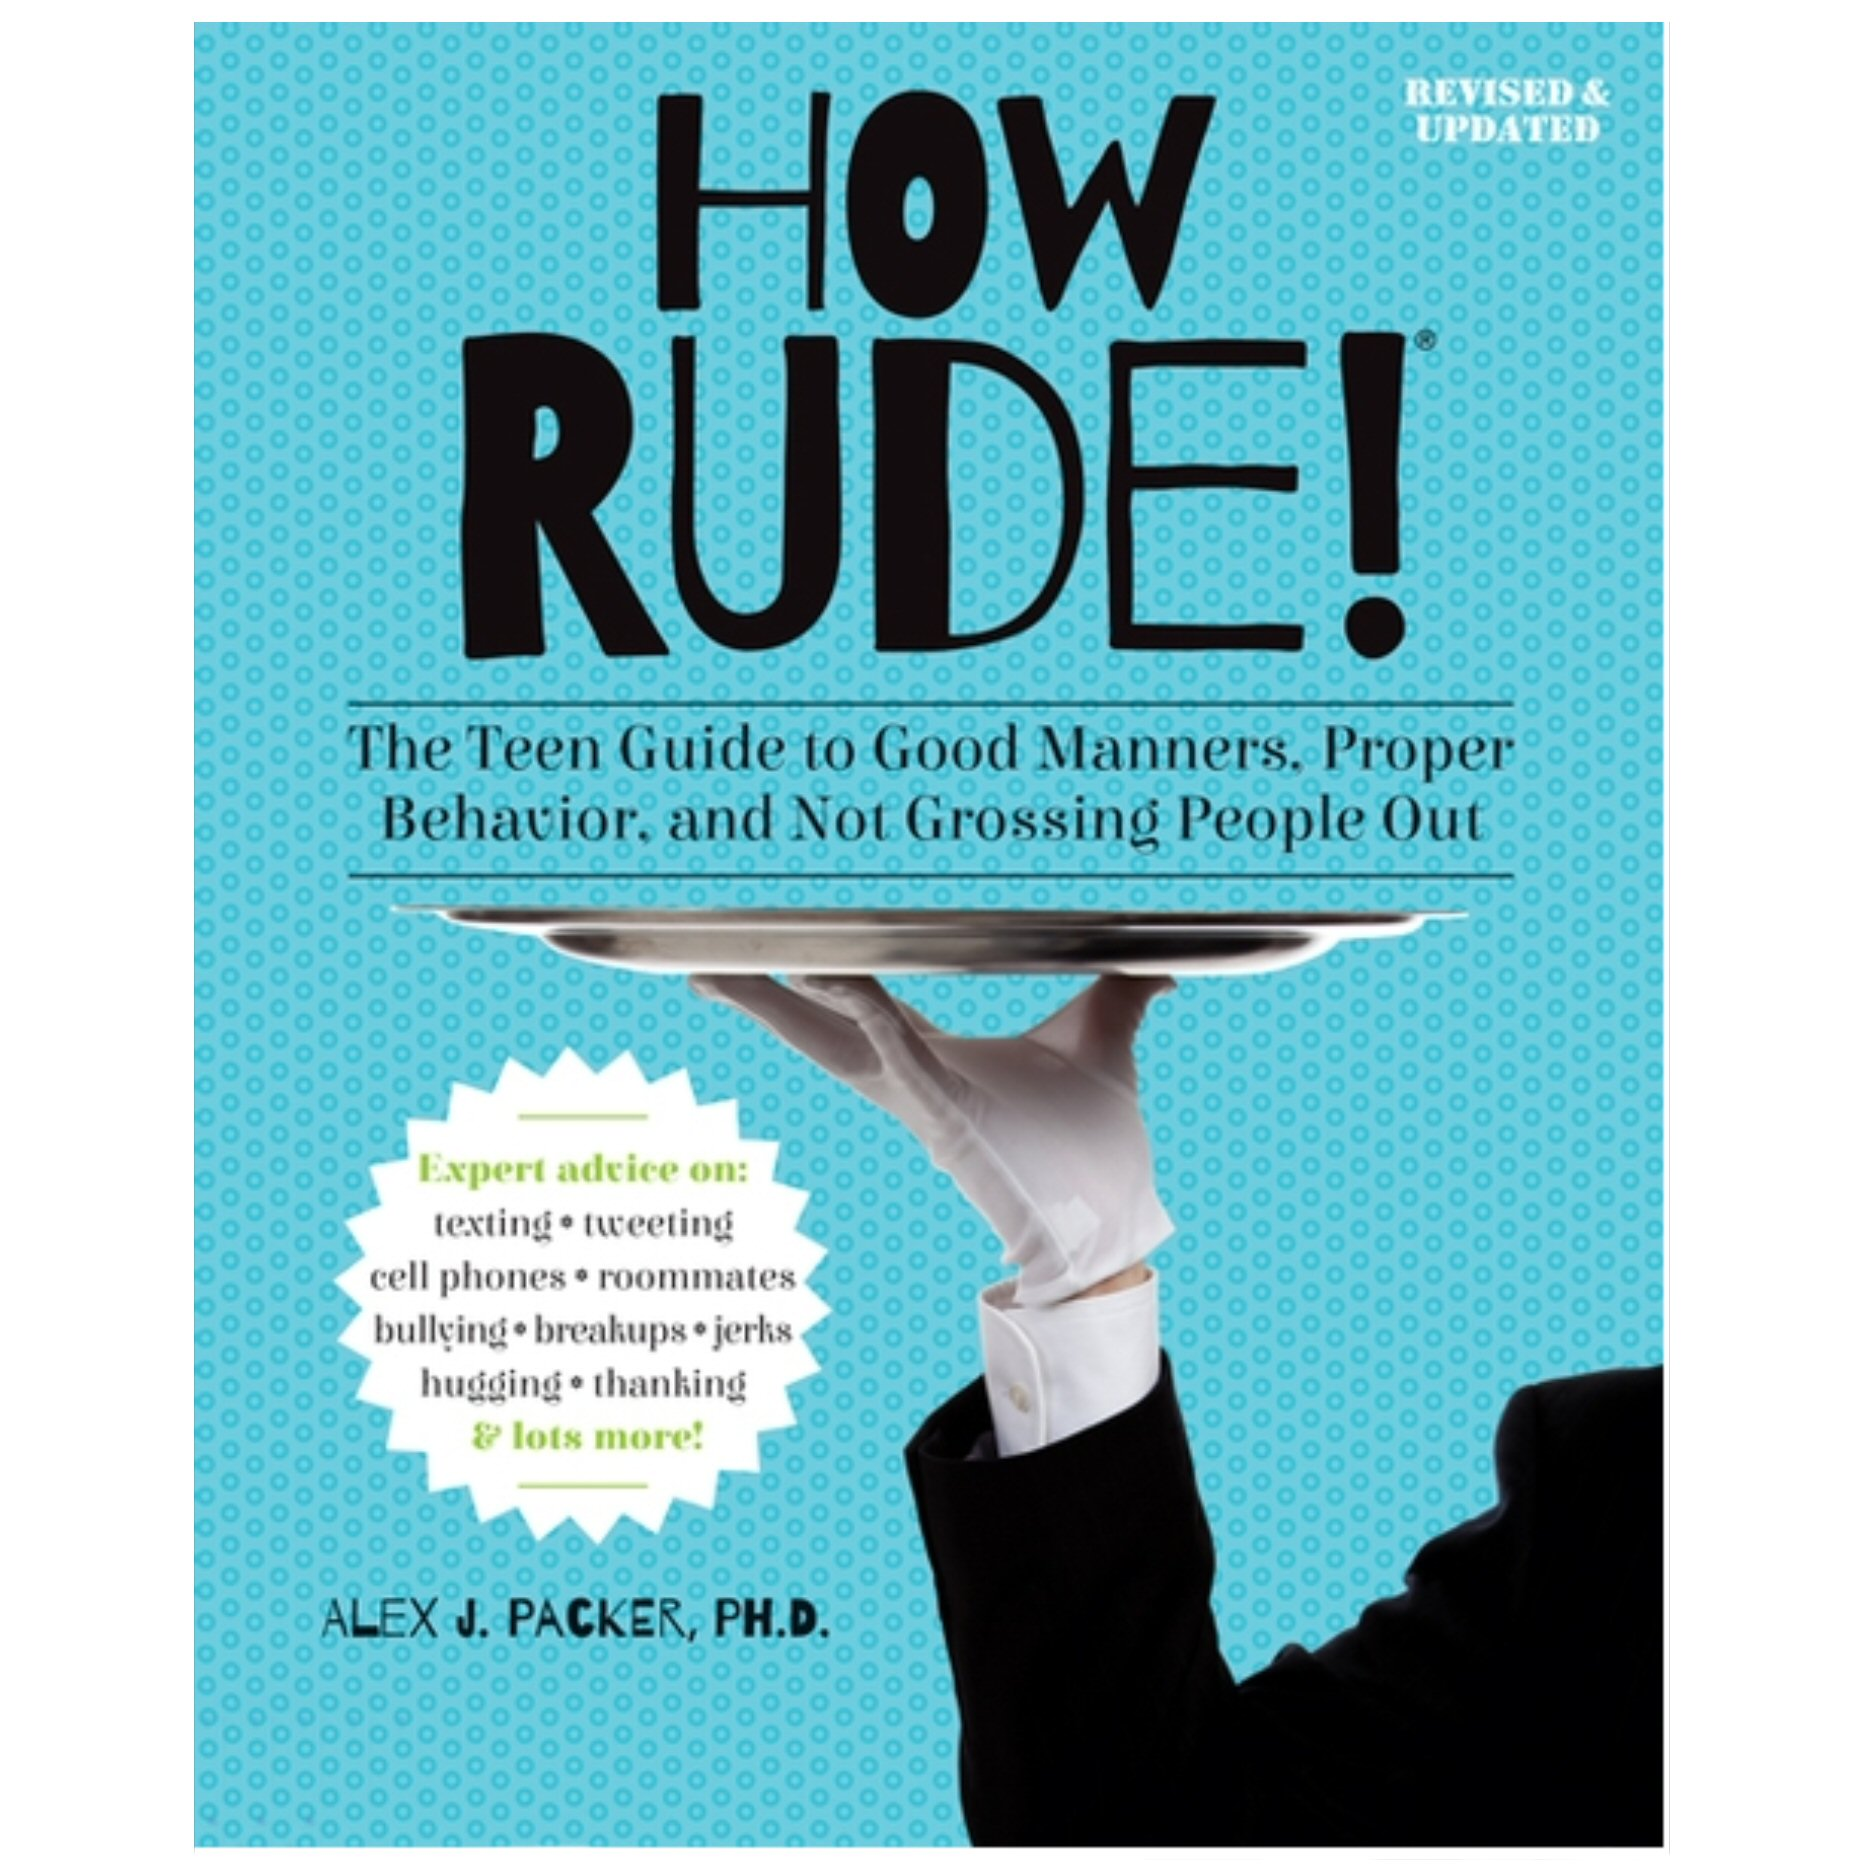 How Rude! The Teen Guide to Good Manners, Proper Behavior, and Not Grossing People Out